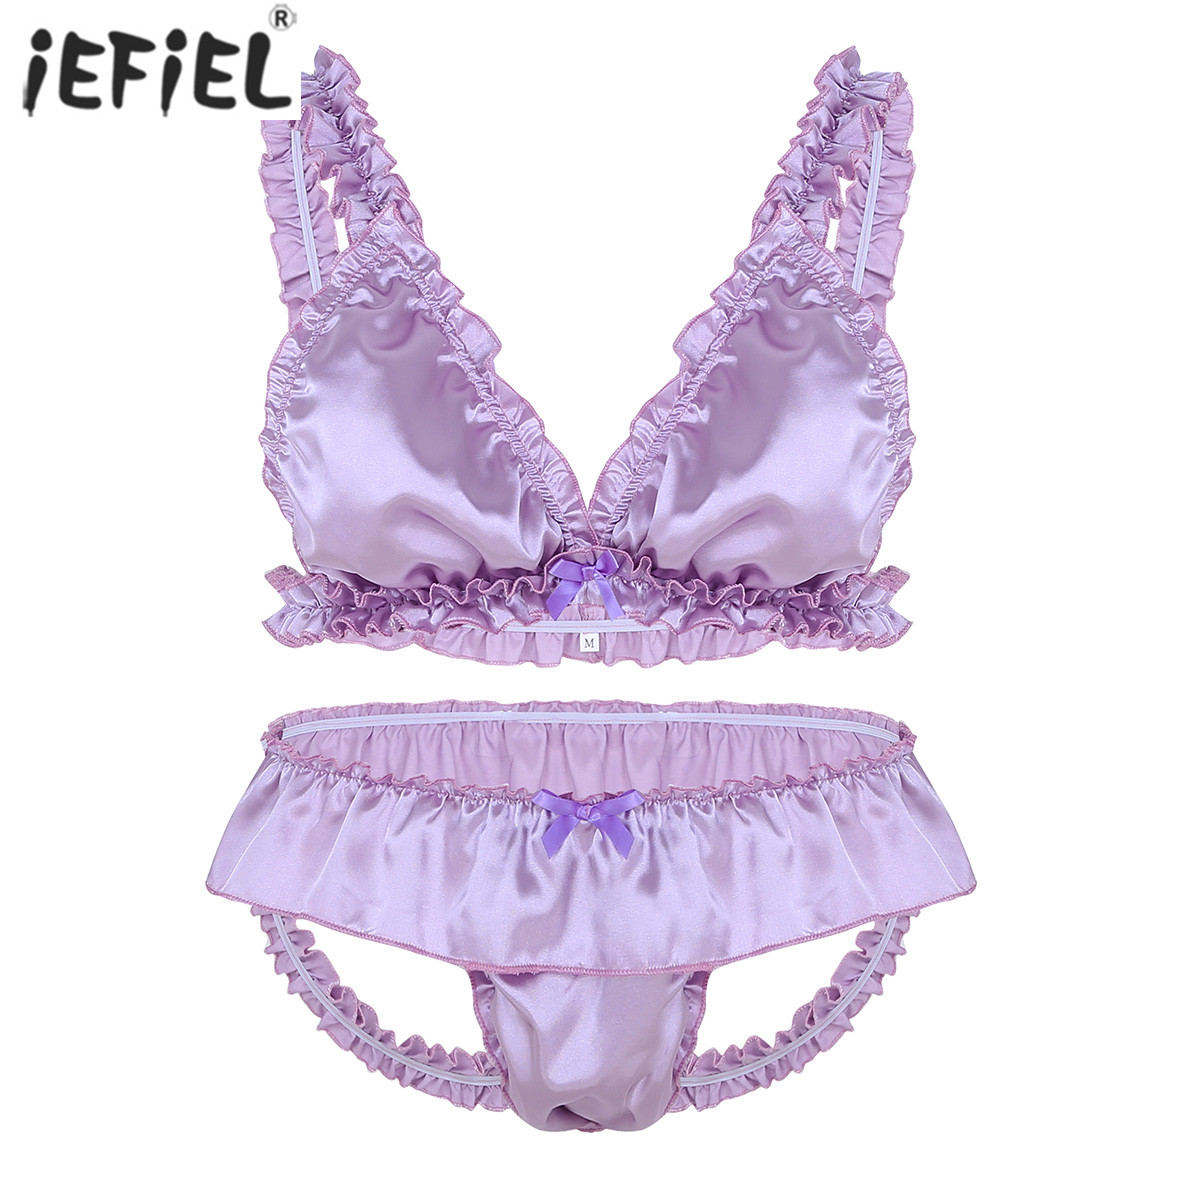 Mens Sissy <font><b>Lingerie</b></font> <font><b>Set</b></font> Soft Satin Elastic Frilly Ruffled Bowknot Bikini Bra Top Sexy <font><b>Gay</b></font> <font><b>Lingerie</b></font> <font><b>Set</b></font> with Open Back Underwear image